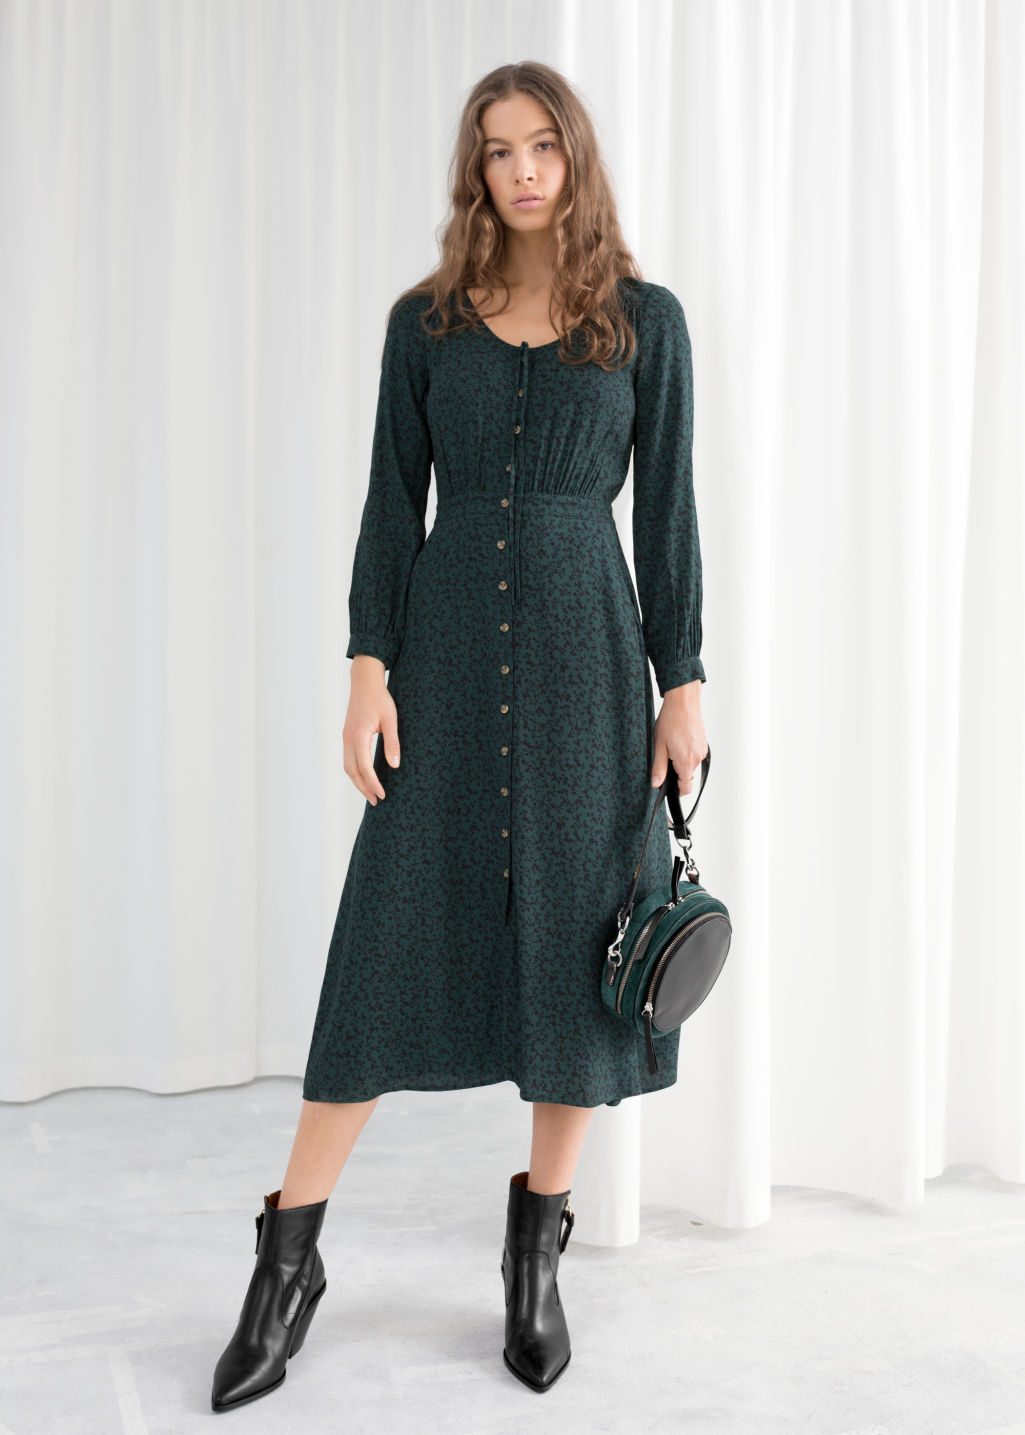 bf5c81a0f8b4 Printed Button Up Midi Dress - Green - Printed dresses -   Other Stories